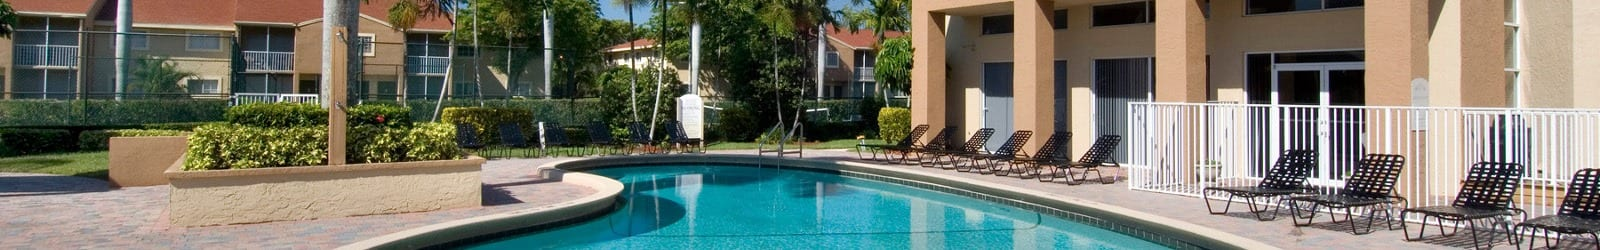 1, 2 & 3 bedrooms offered at apartments in West Palm Beach